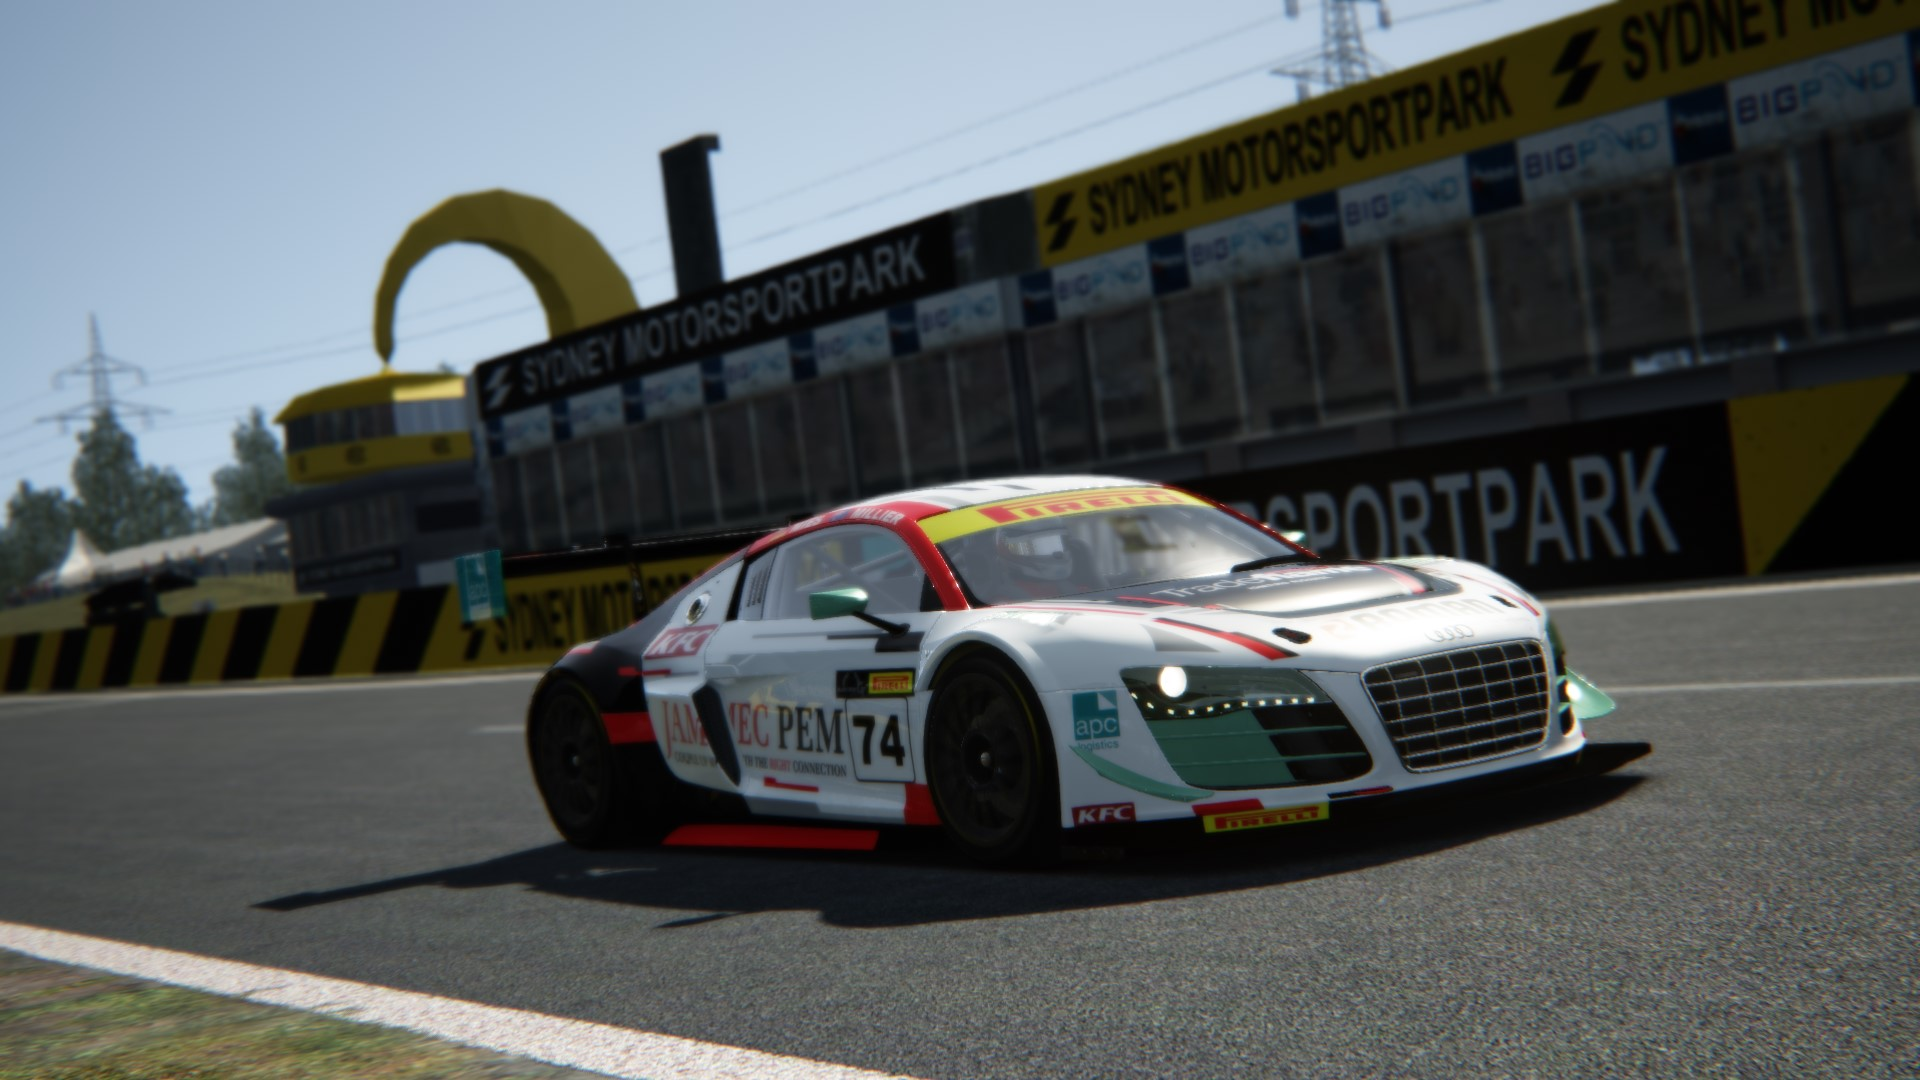 Screenshot_ks_audi_r8_lms_eastern_creek2014_25-11-115-12-5-11.jpg